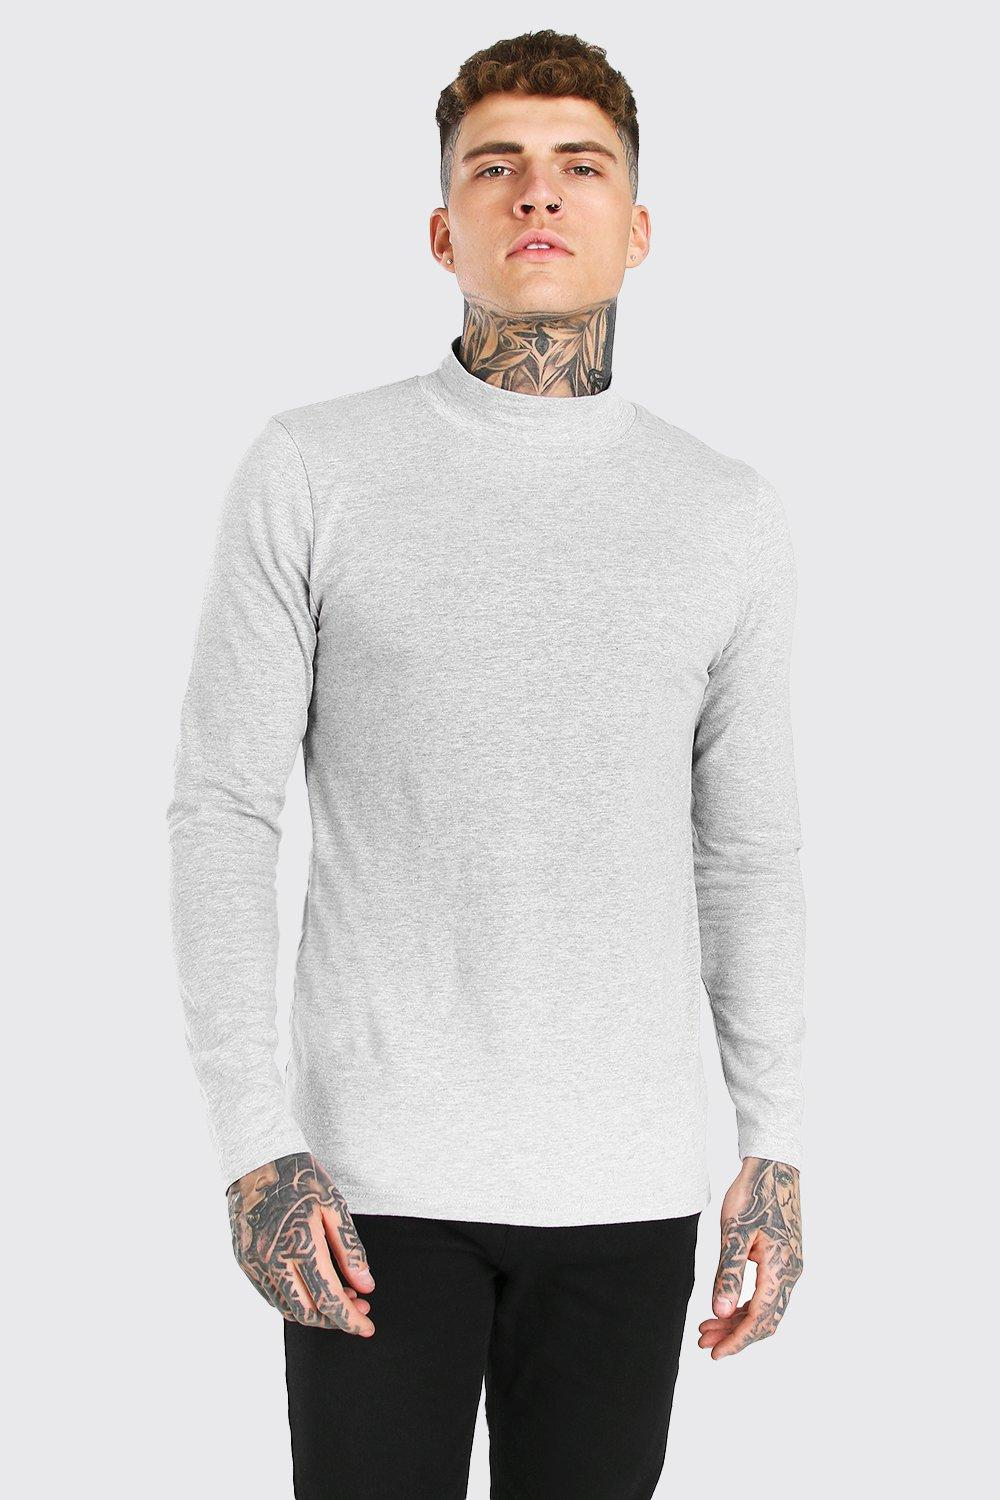 mens muscle fit extended neck long sleeve t-shirt - grey